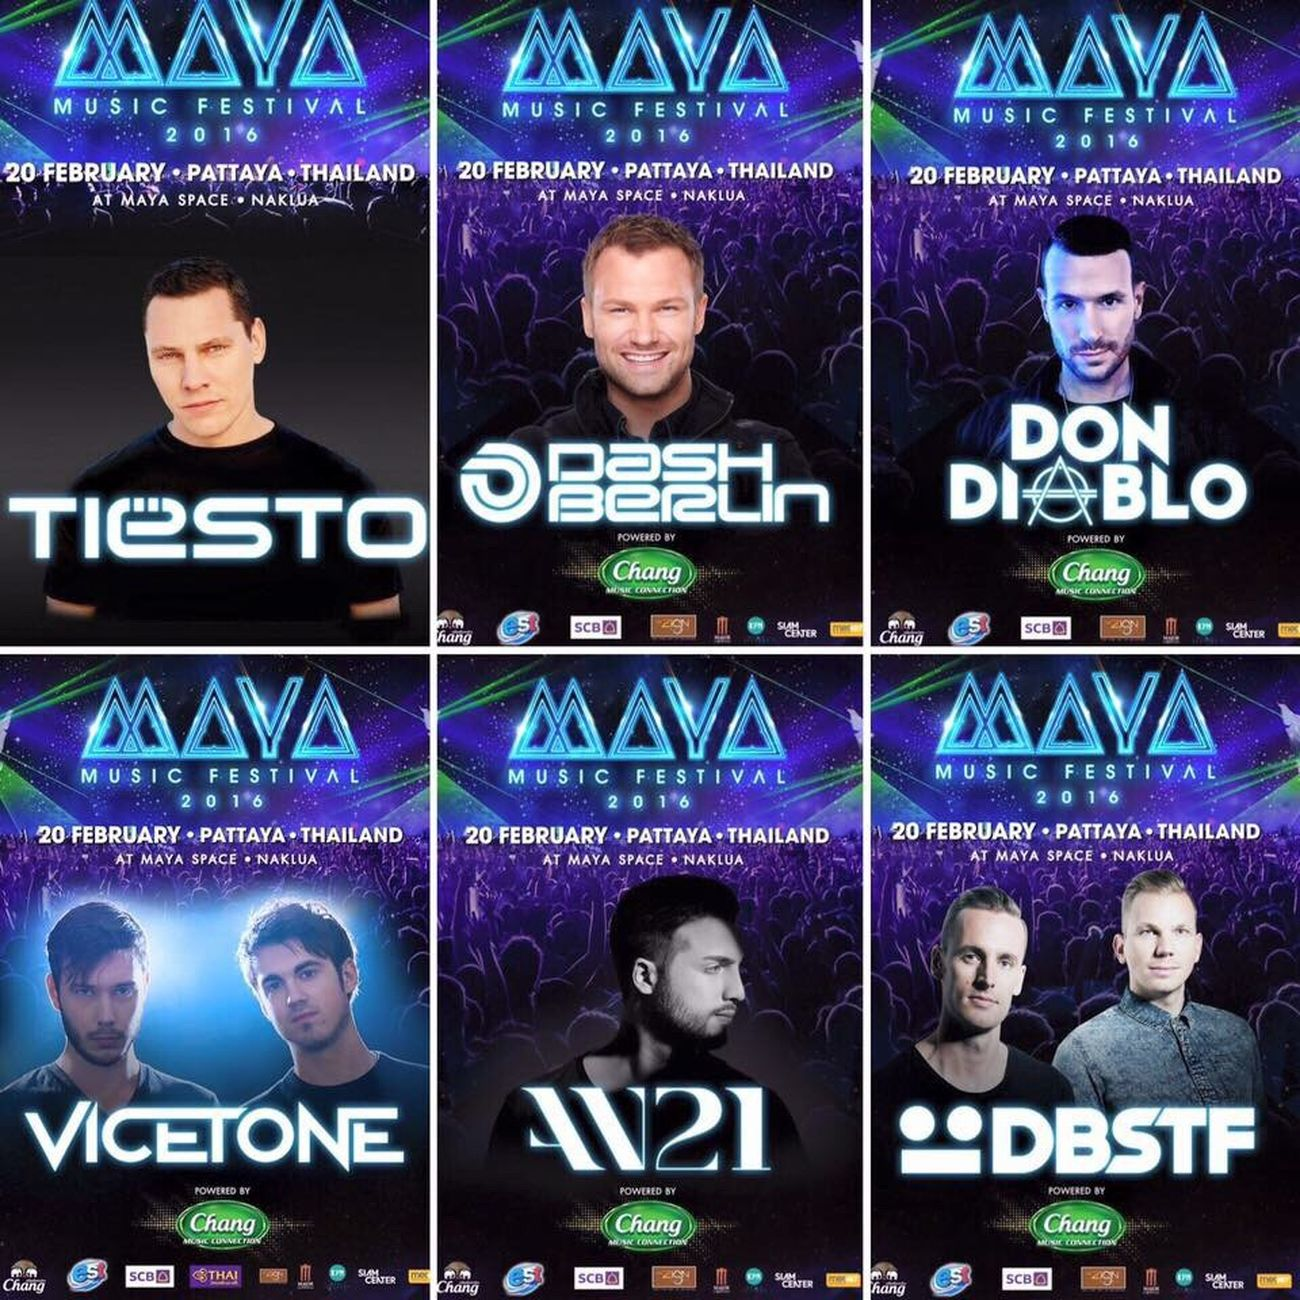 So much fun Mayamusicfestival Edm Pattaya Thailand Tiesto DashBerlin Dondiablo Vicetone An21 DBSTF. The Best DJ 😎